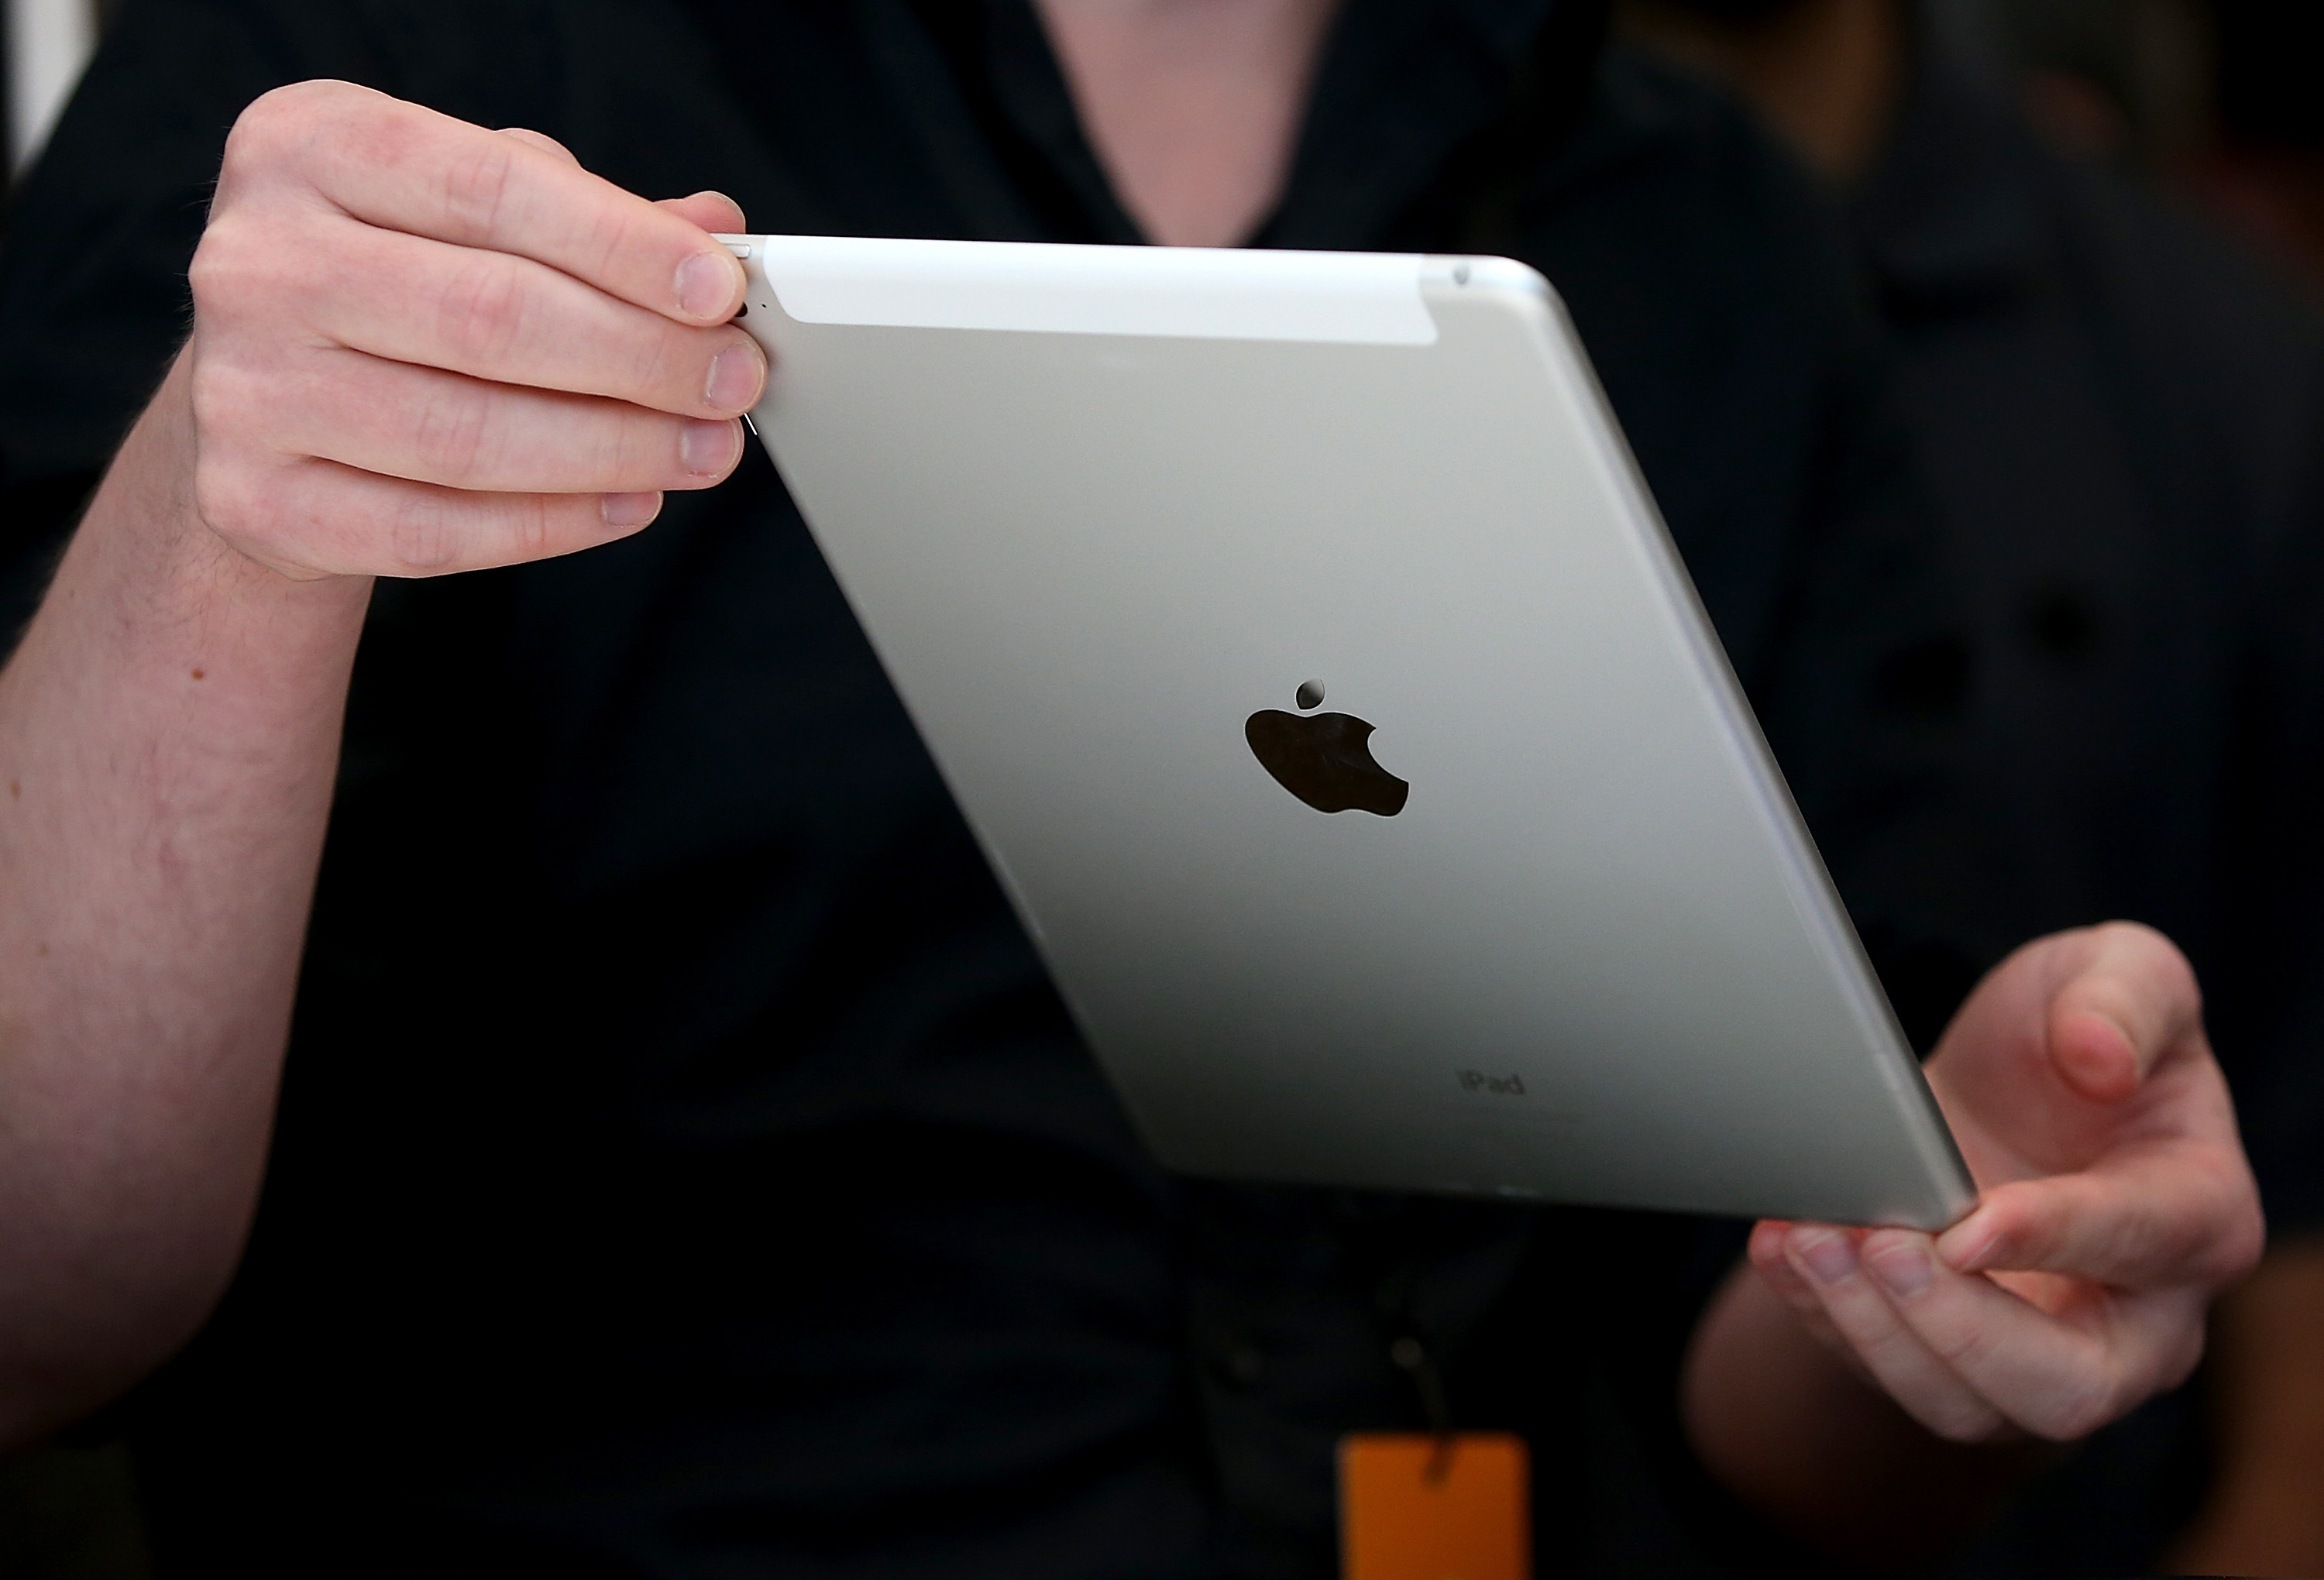 An attendee inspects new iPad Air 2 during an Apple special event on Oct. 16, 2014 in Cupertino, Calif.